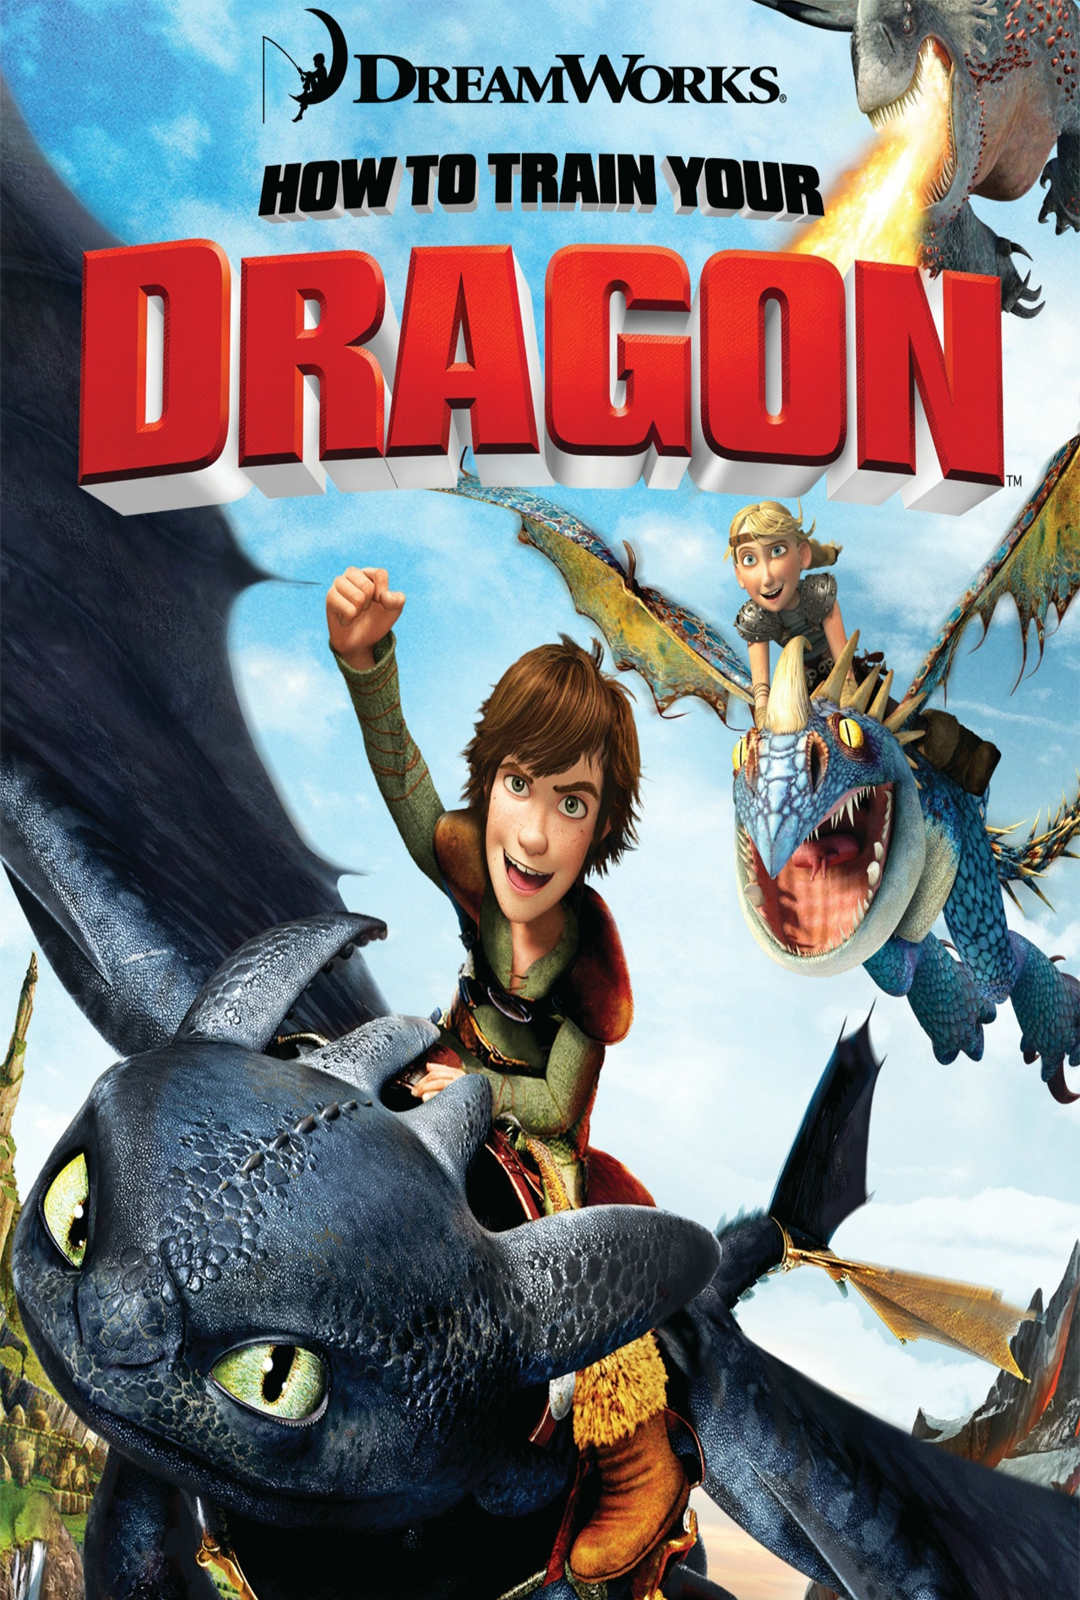 How To Train Your Dragon 2 - PARENT REVIEW - Steadfast Family